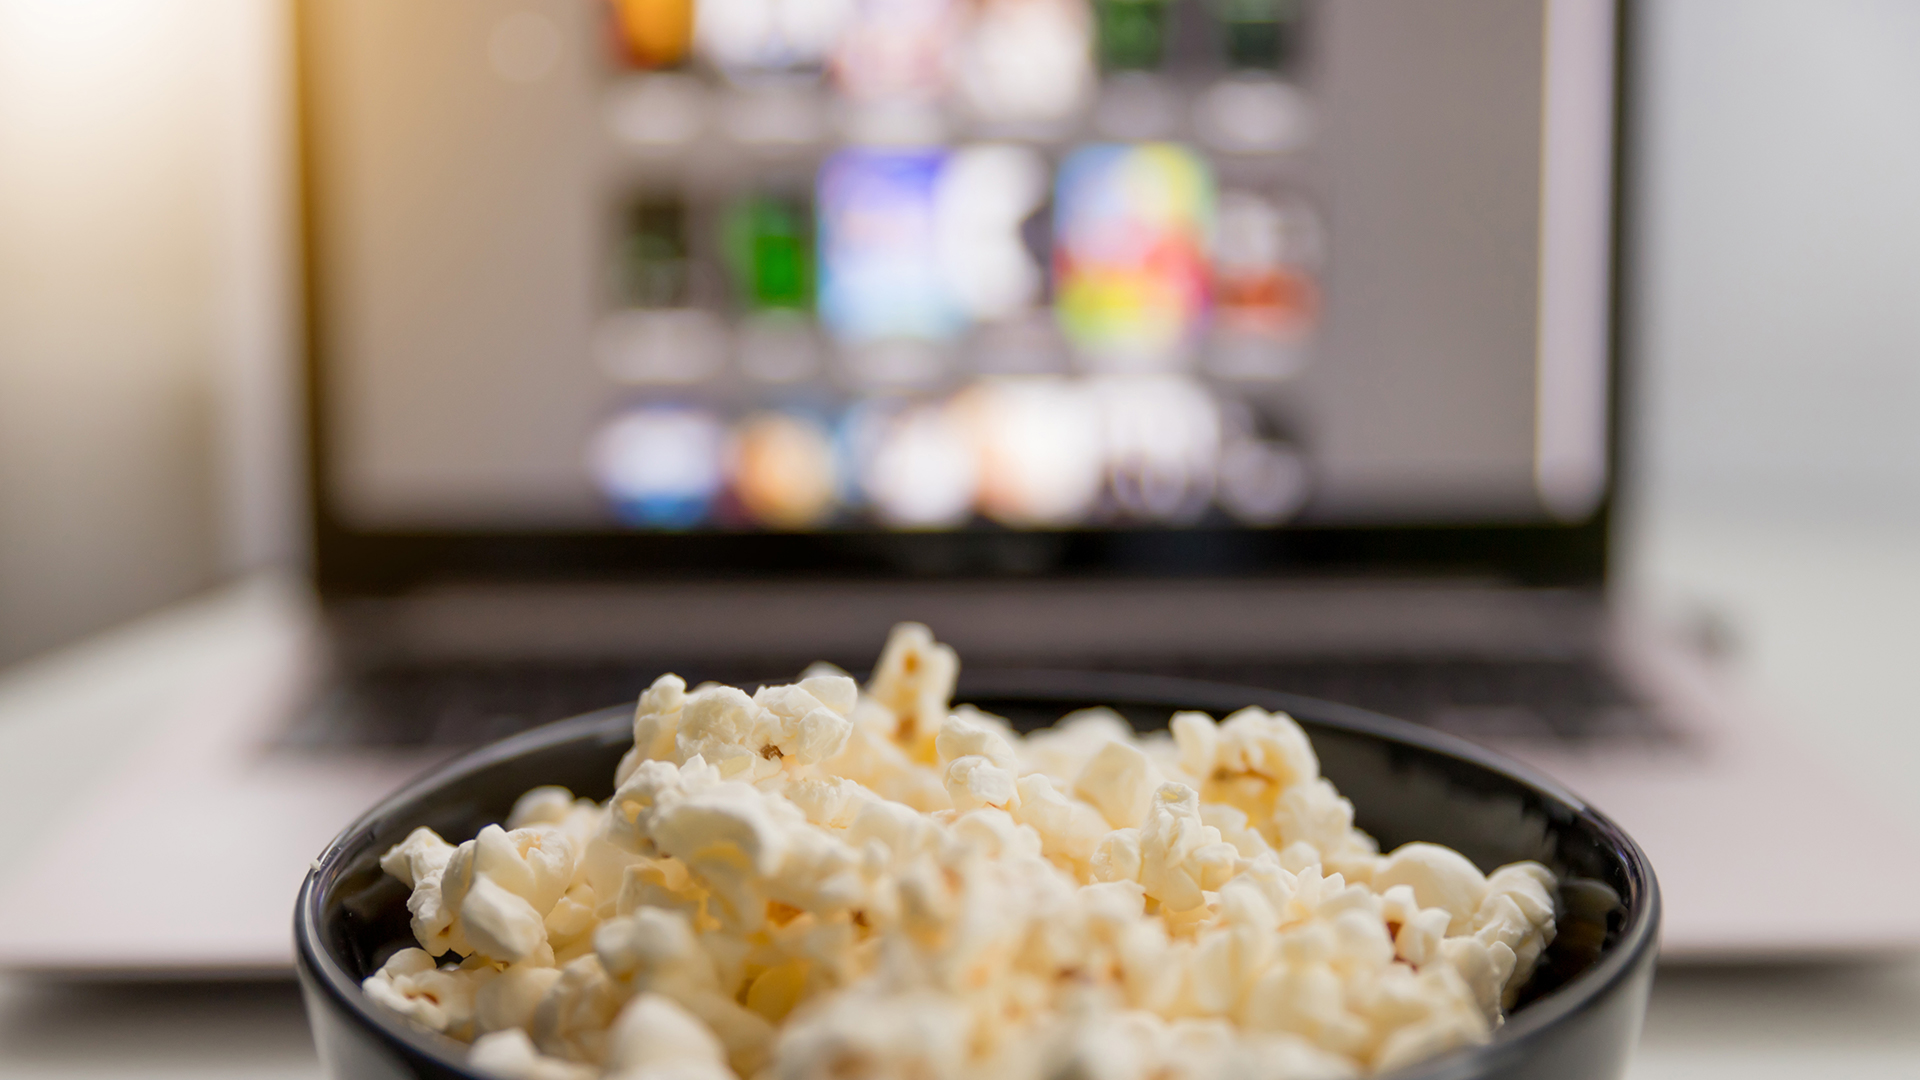 Netflix's next challenge – Retaining the Connected Customers